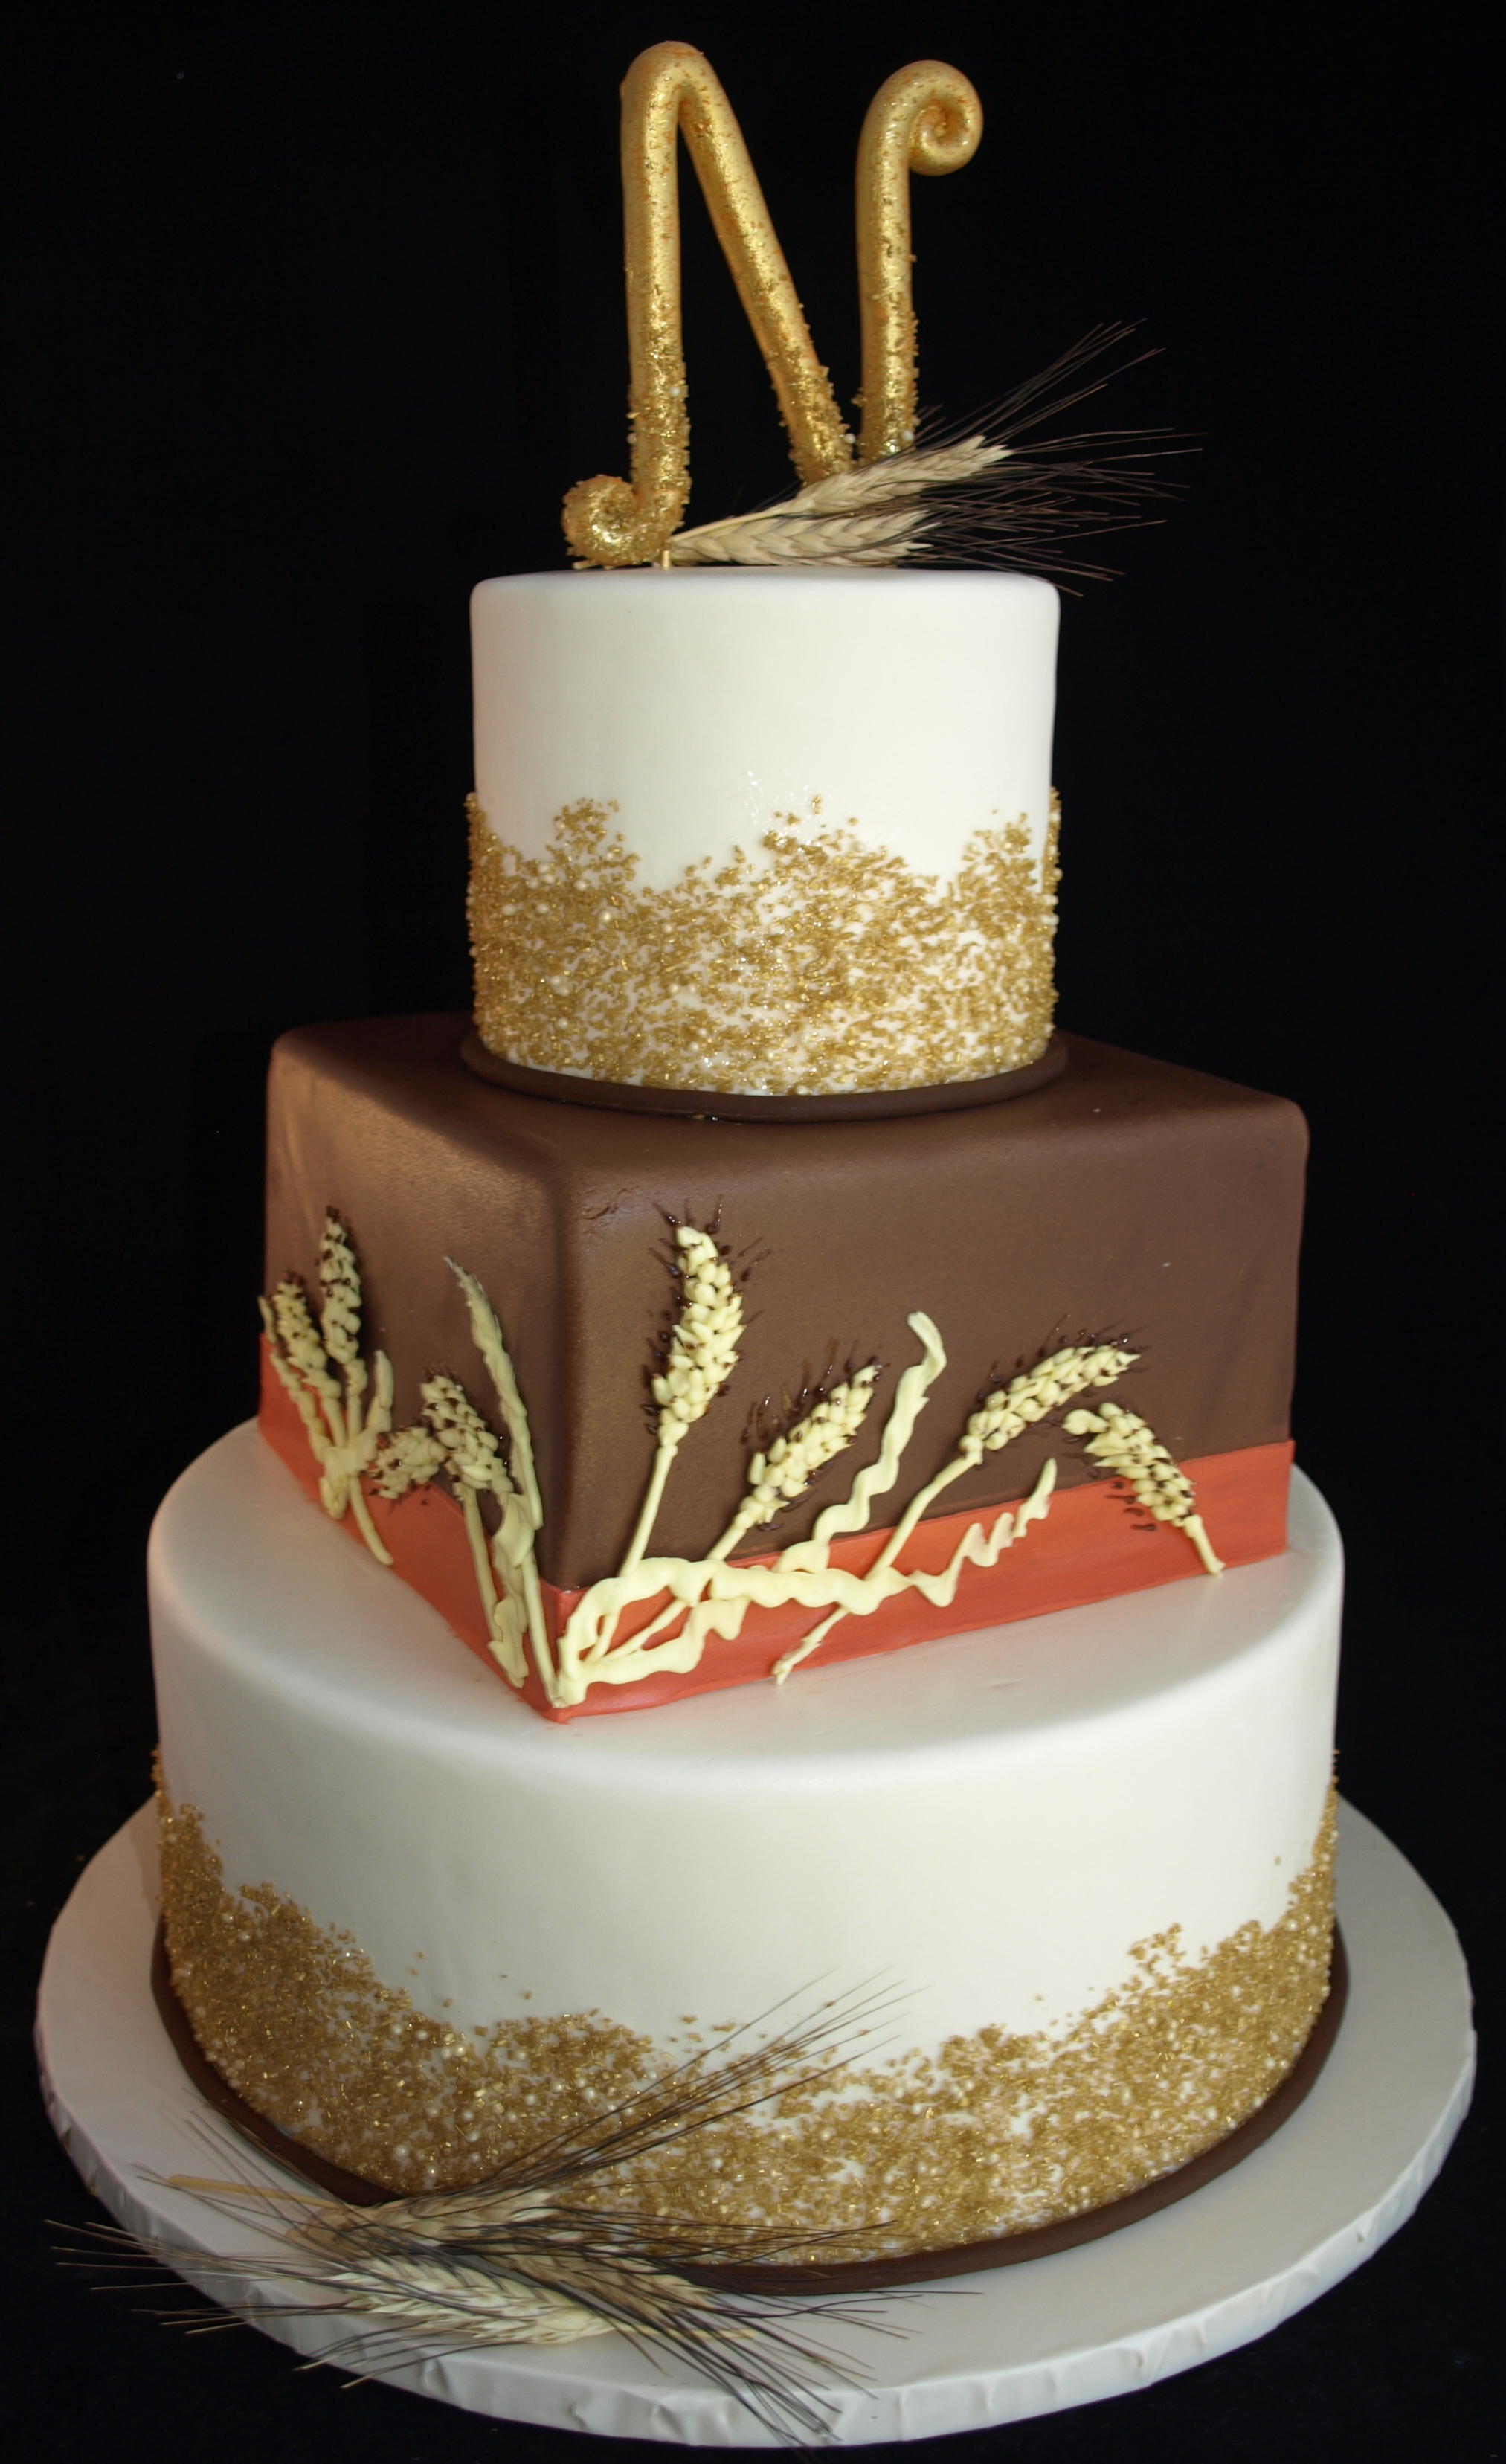 Fall Wedding Cake Brown Orange Gold Fondant Wedding Cake Monogram Cake Topper